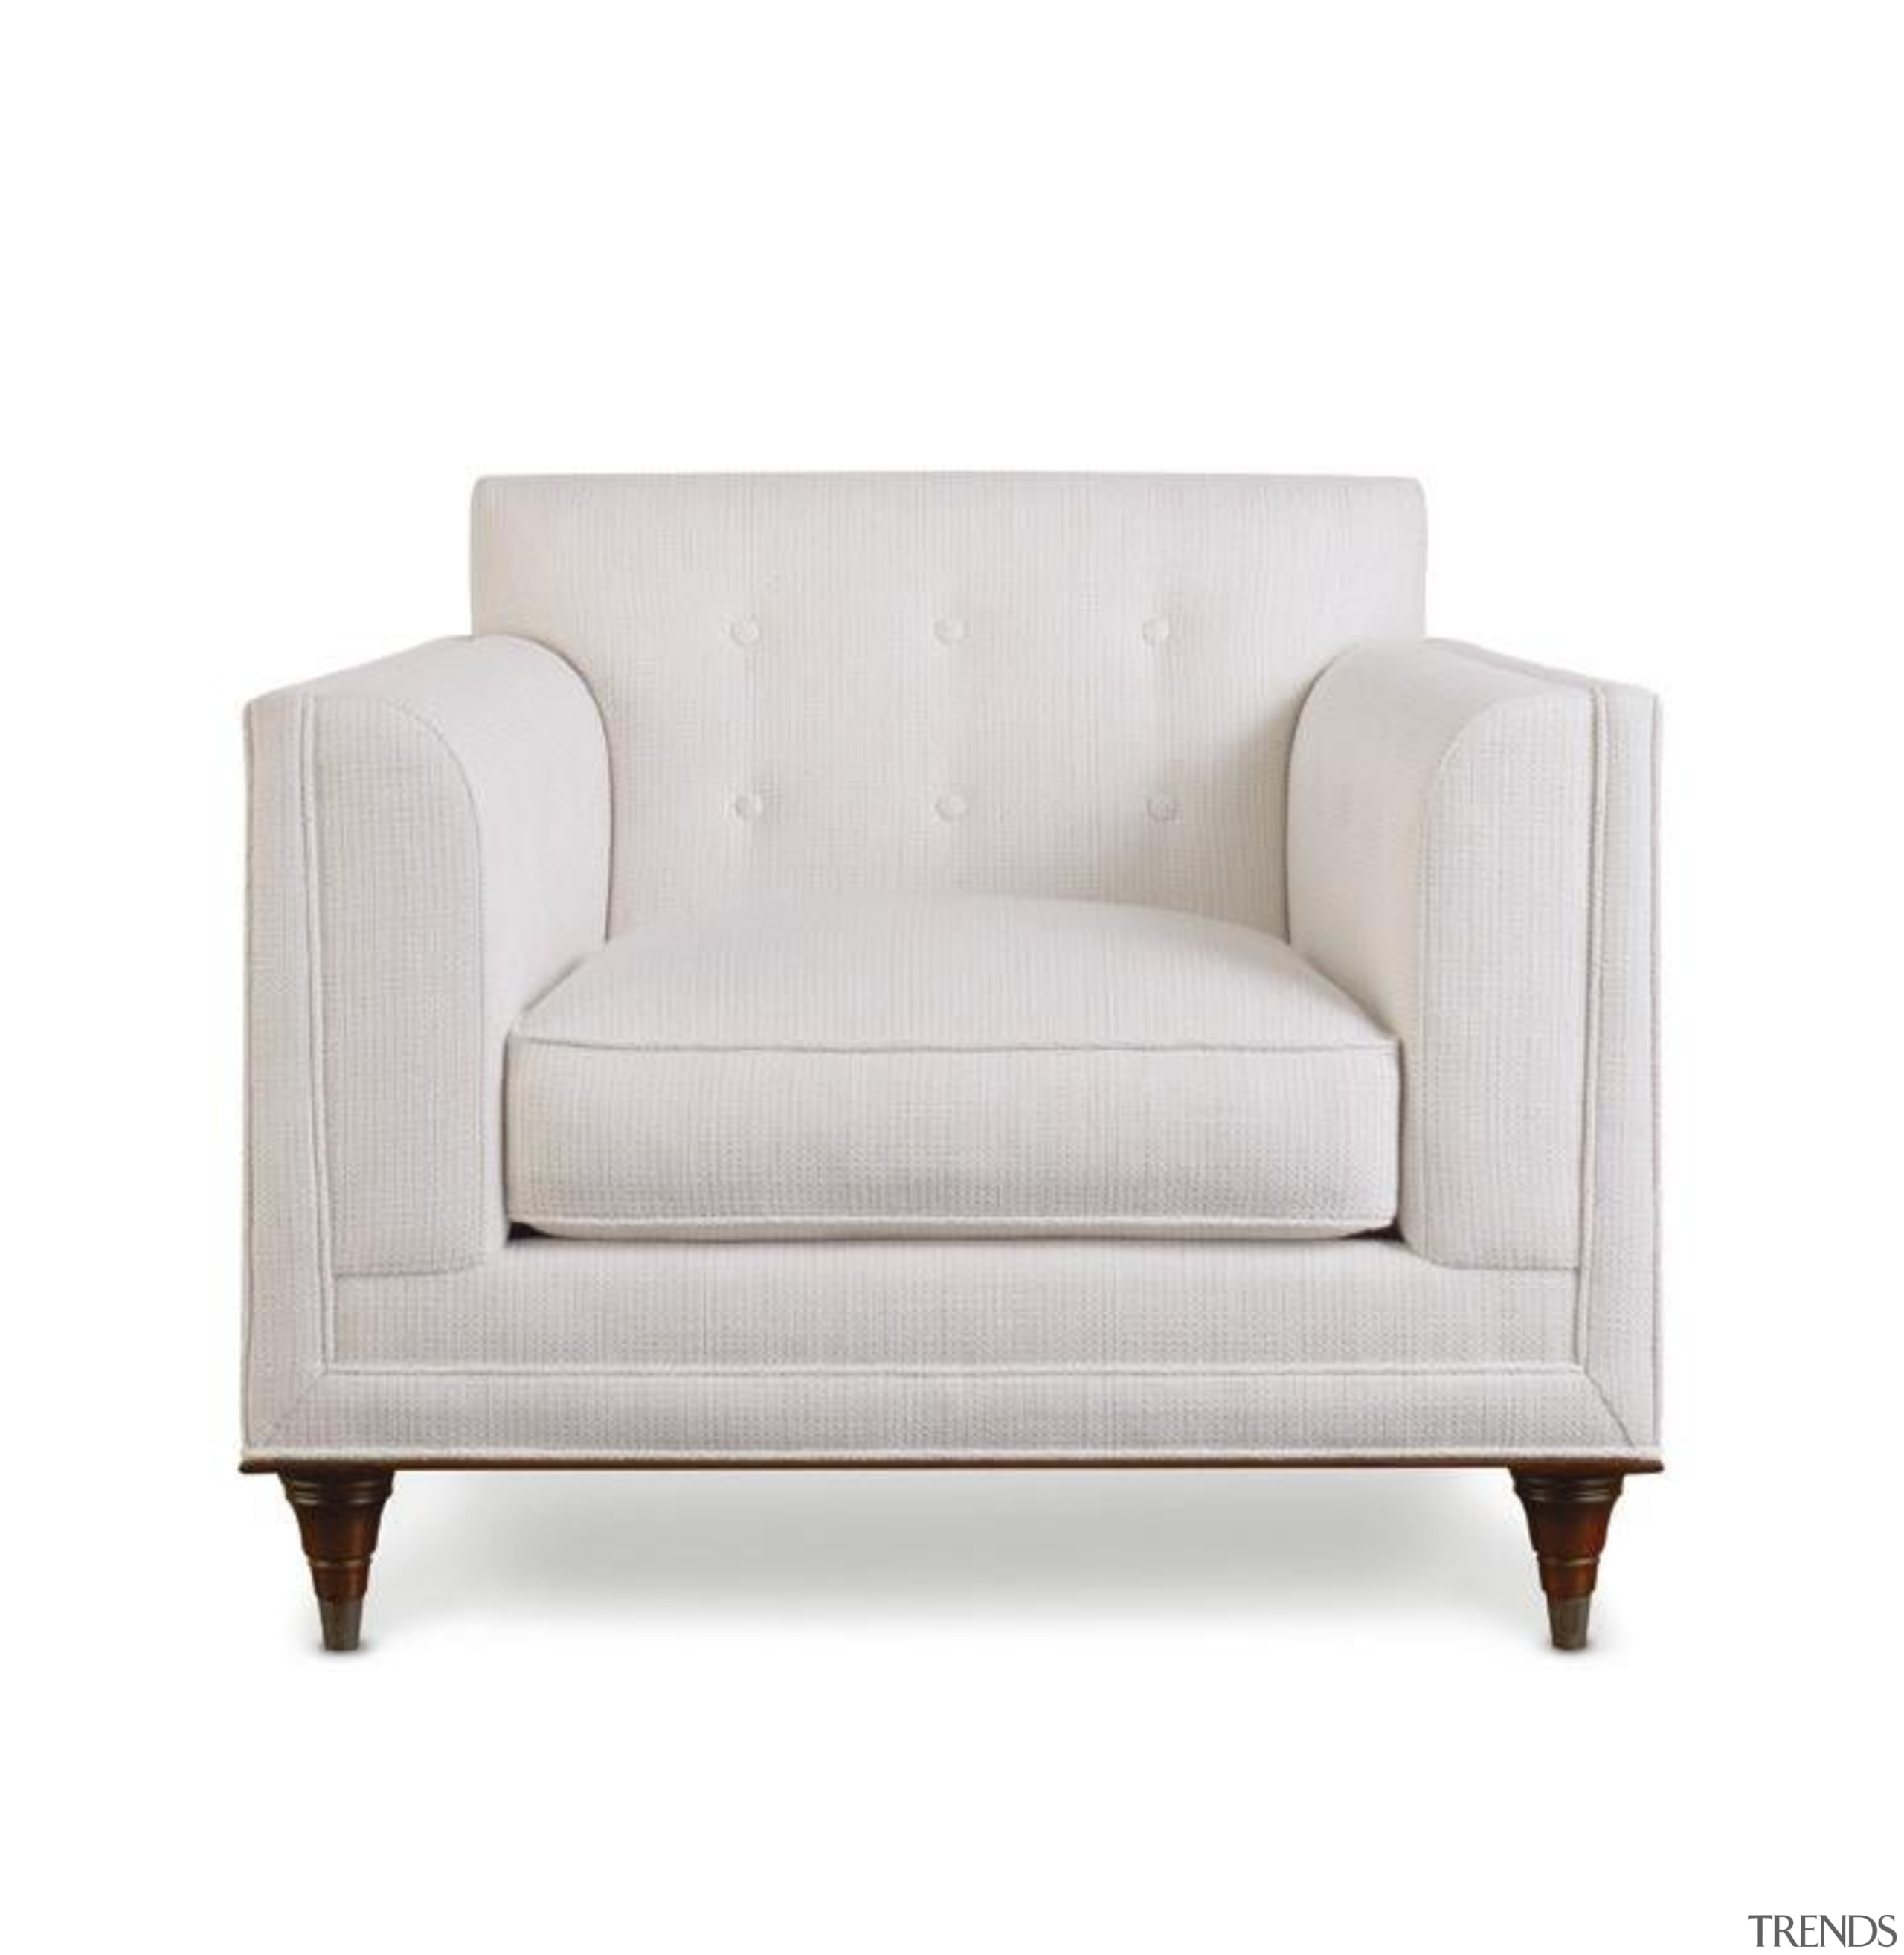 The work of William Sofield is defined not angle, armrest, chair, club chair, couch, furniture, loveseat, outdoor sofa, product design, sofa bed, studio couch, white